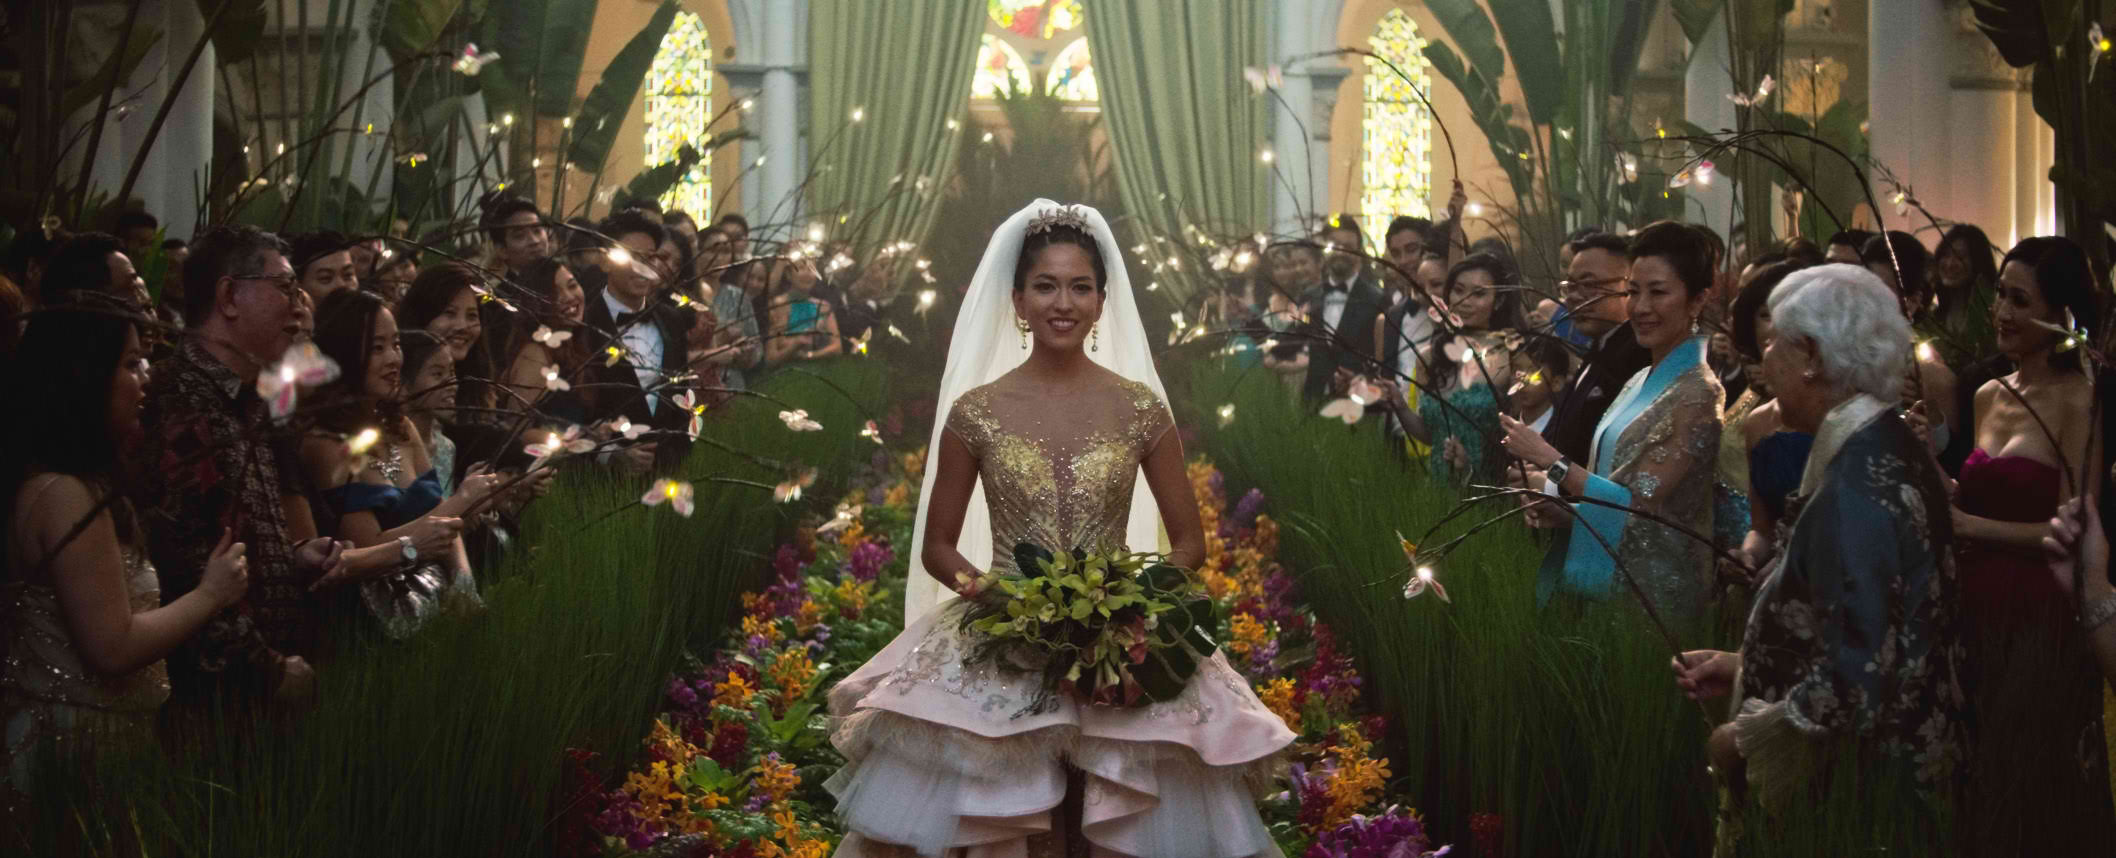 Discover the heart underneath the glamour in Crazy Rich Asians | Credit: Warner Bros. Pictures